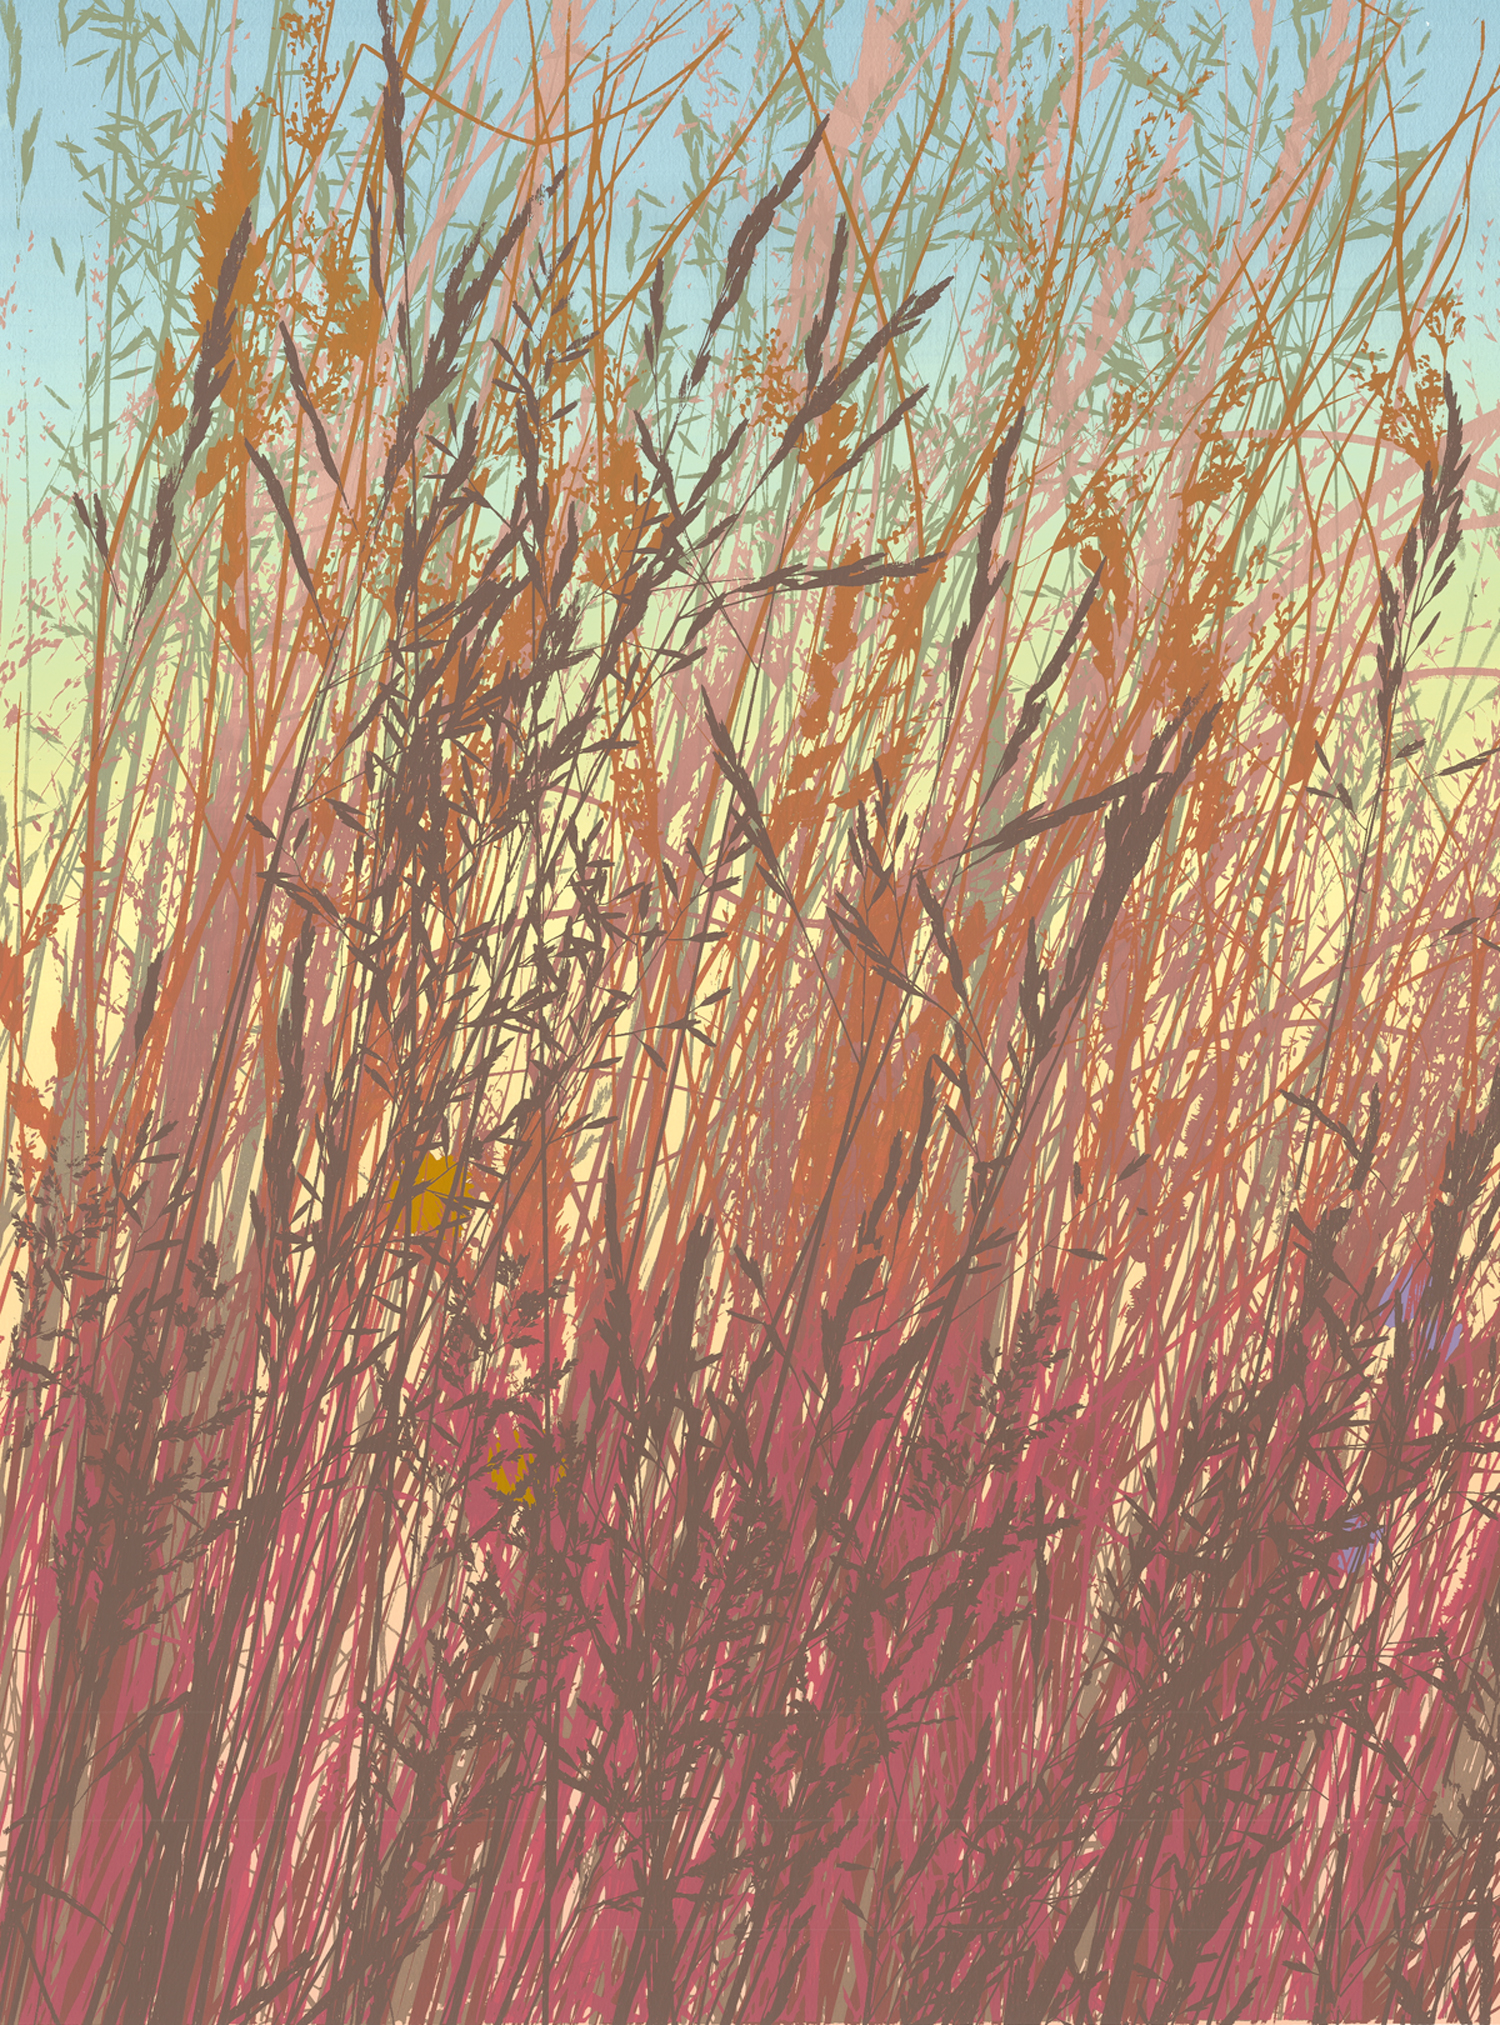 "254 Fall Grasses 24"" x 18"" 10 colors 5 edition / 3 available $425"